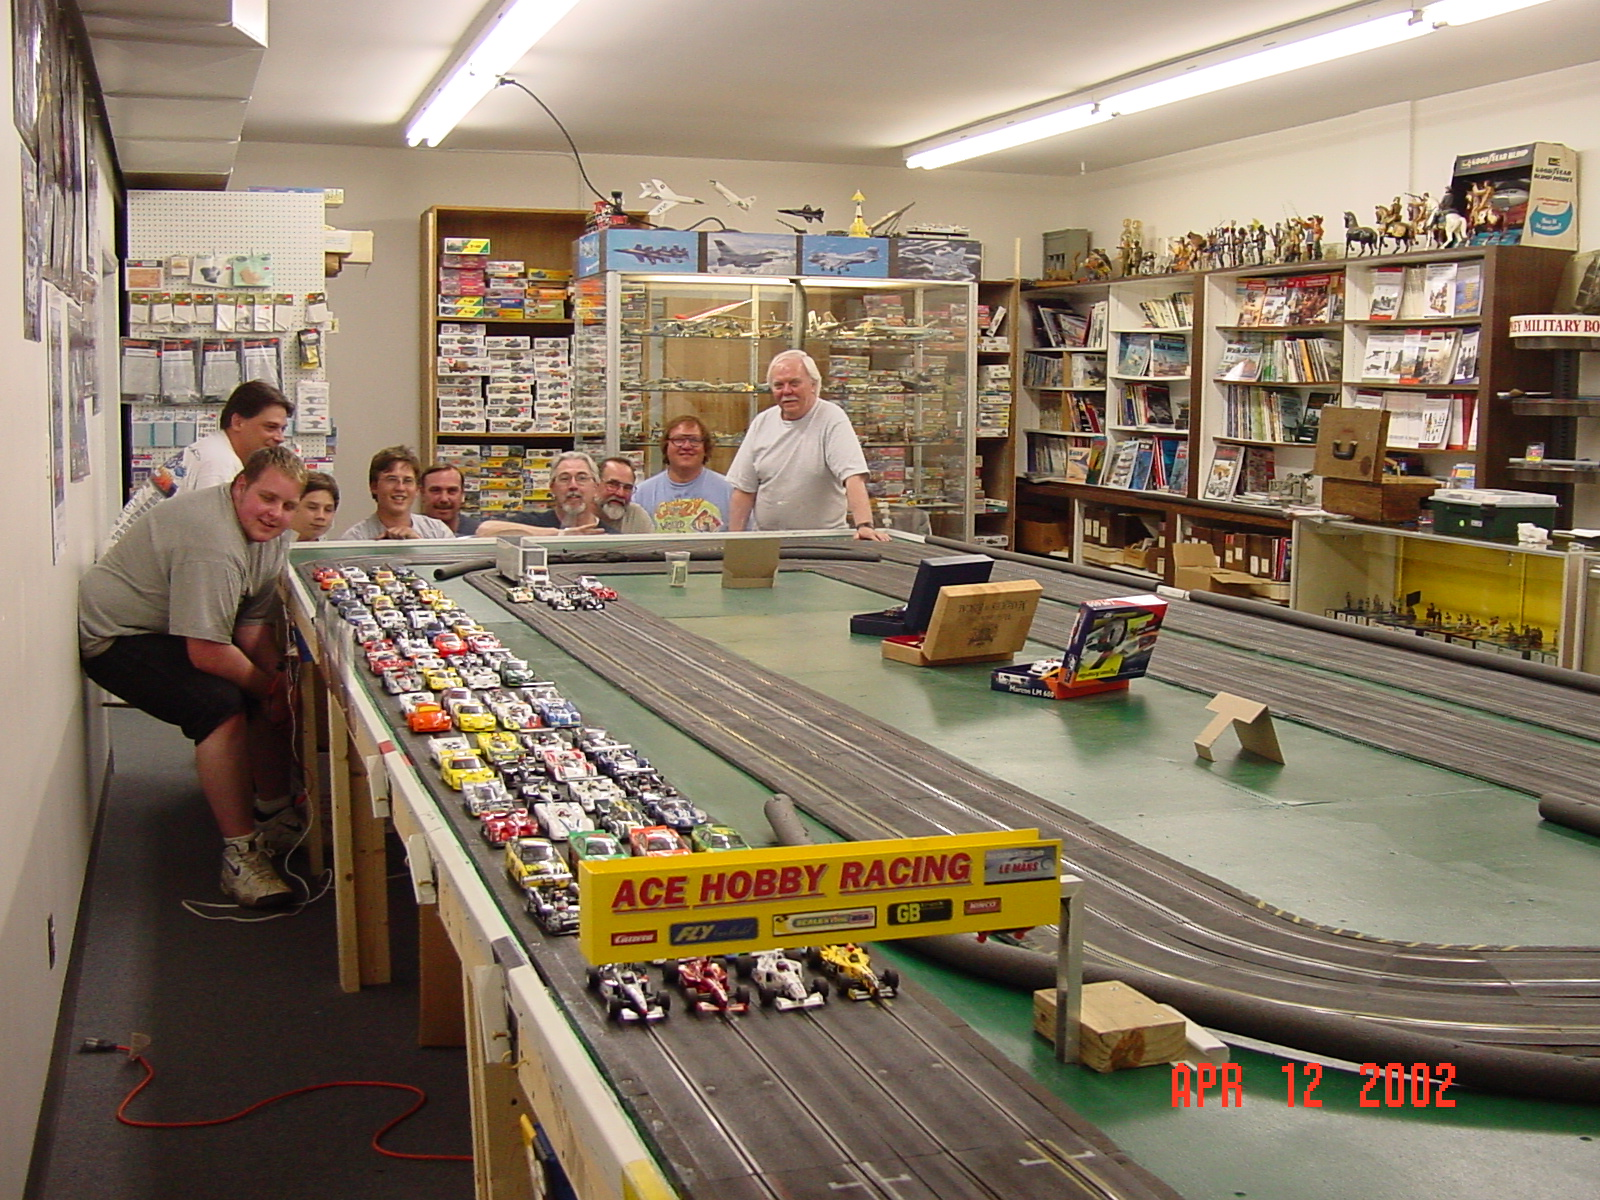 Canada's Hobby Mega-Store. Crafts, Models, Trains, Toys, RC & More! We're your online hobby megastore and we pride ourselves on being one of the best stocked sources of hobby .